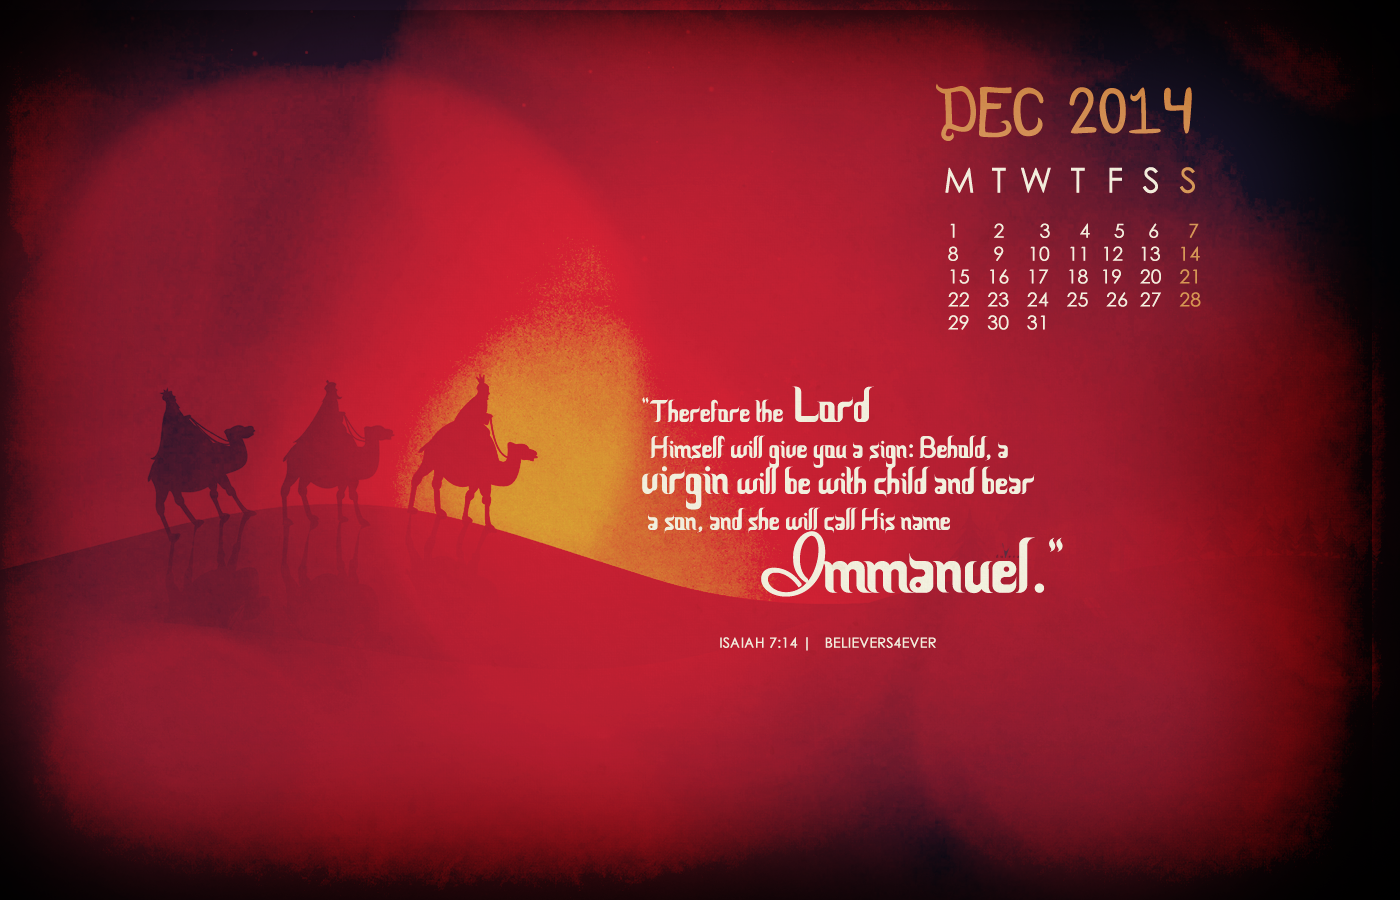 immanuel christian christmas wallpaper - Christian Christmas Wallpaper